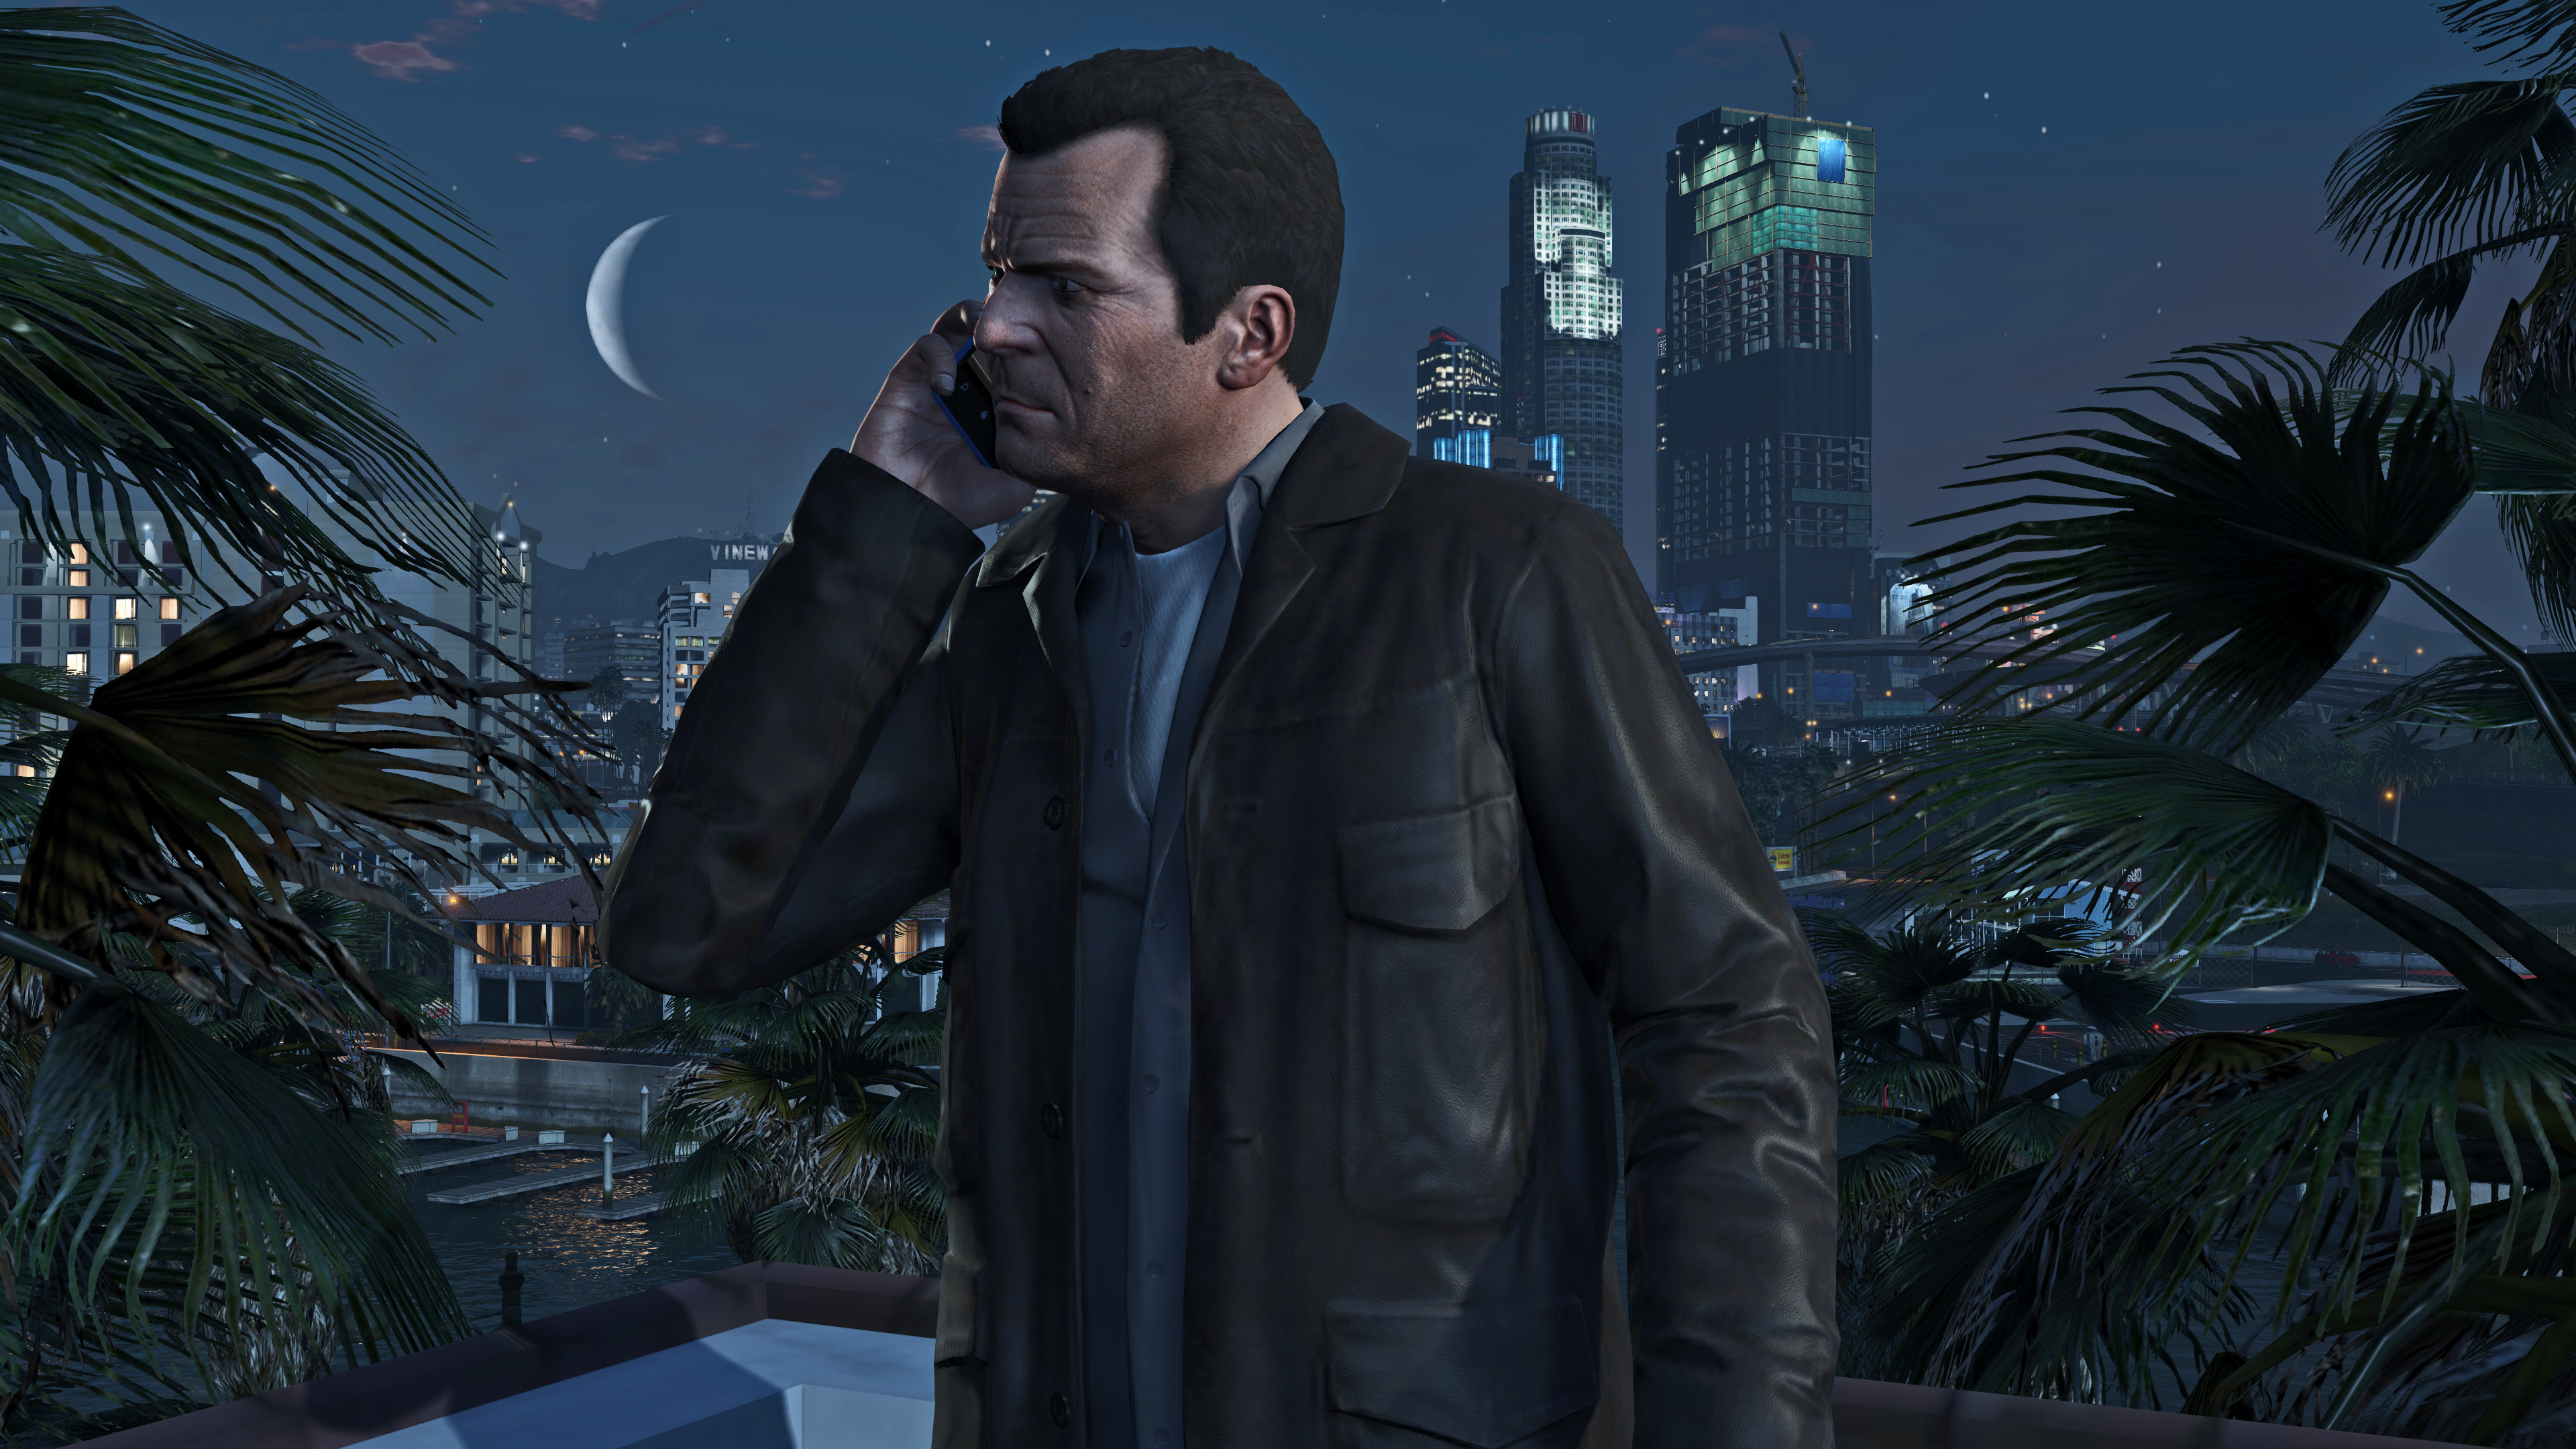 The actor who plays GTA 5's Michael knows nothing about